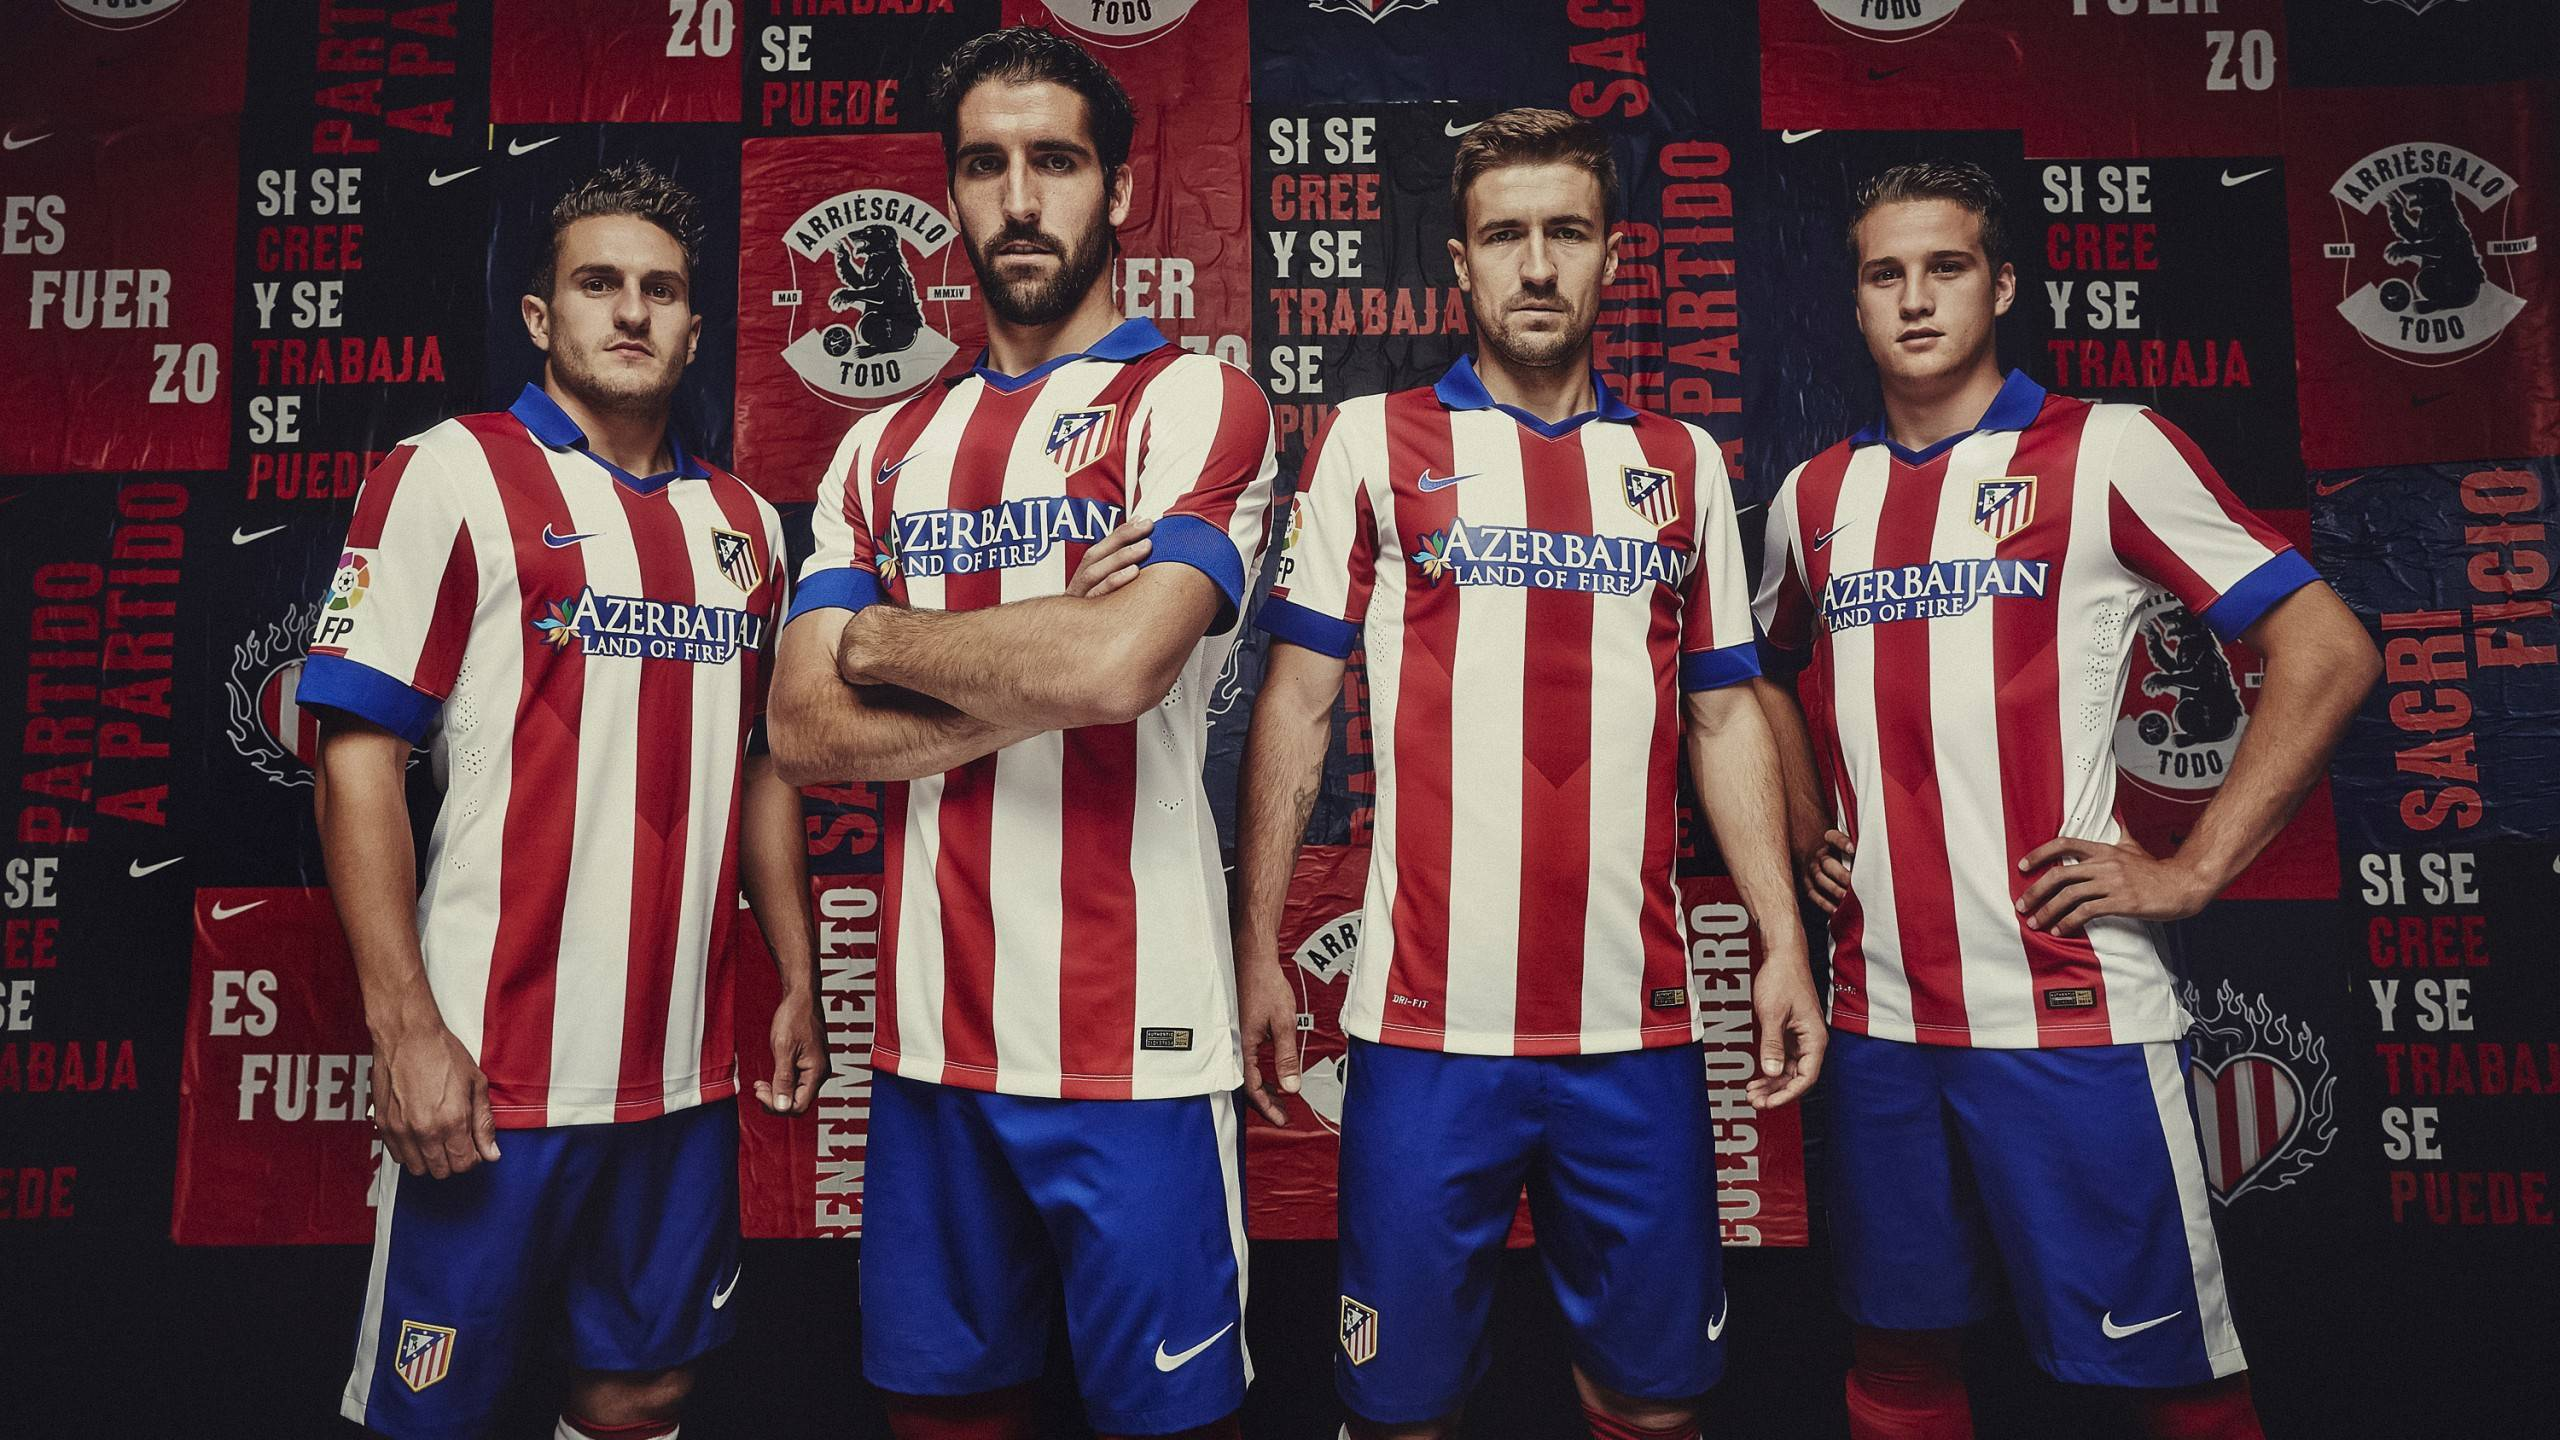 Atletico Madrid 2014 2015 Nike Home Kit Wallpaper Wide or HD